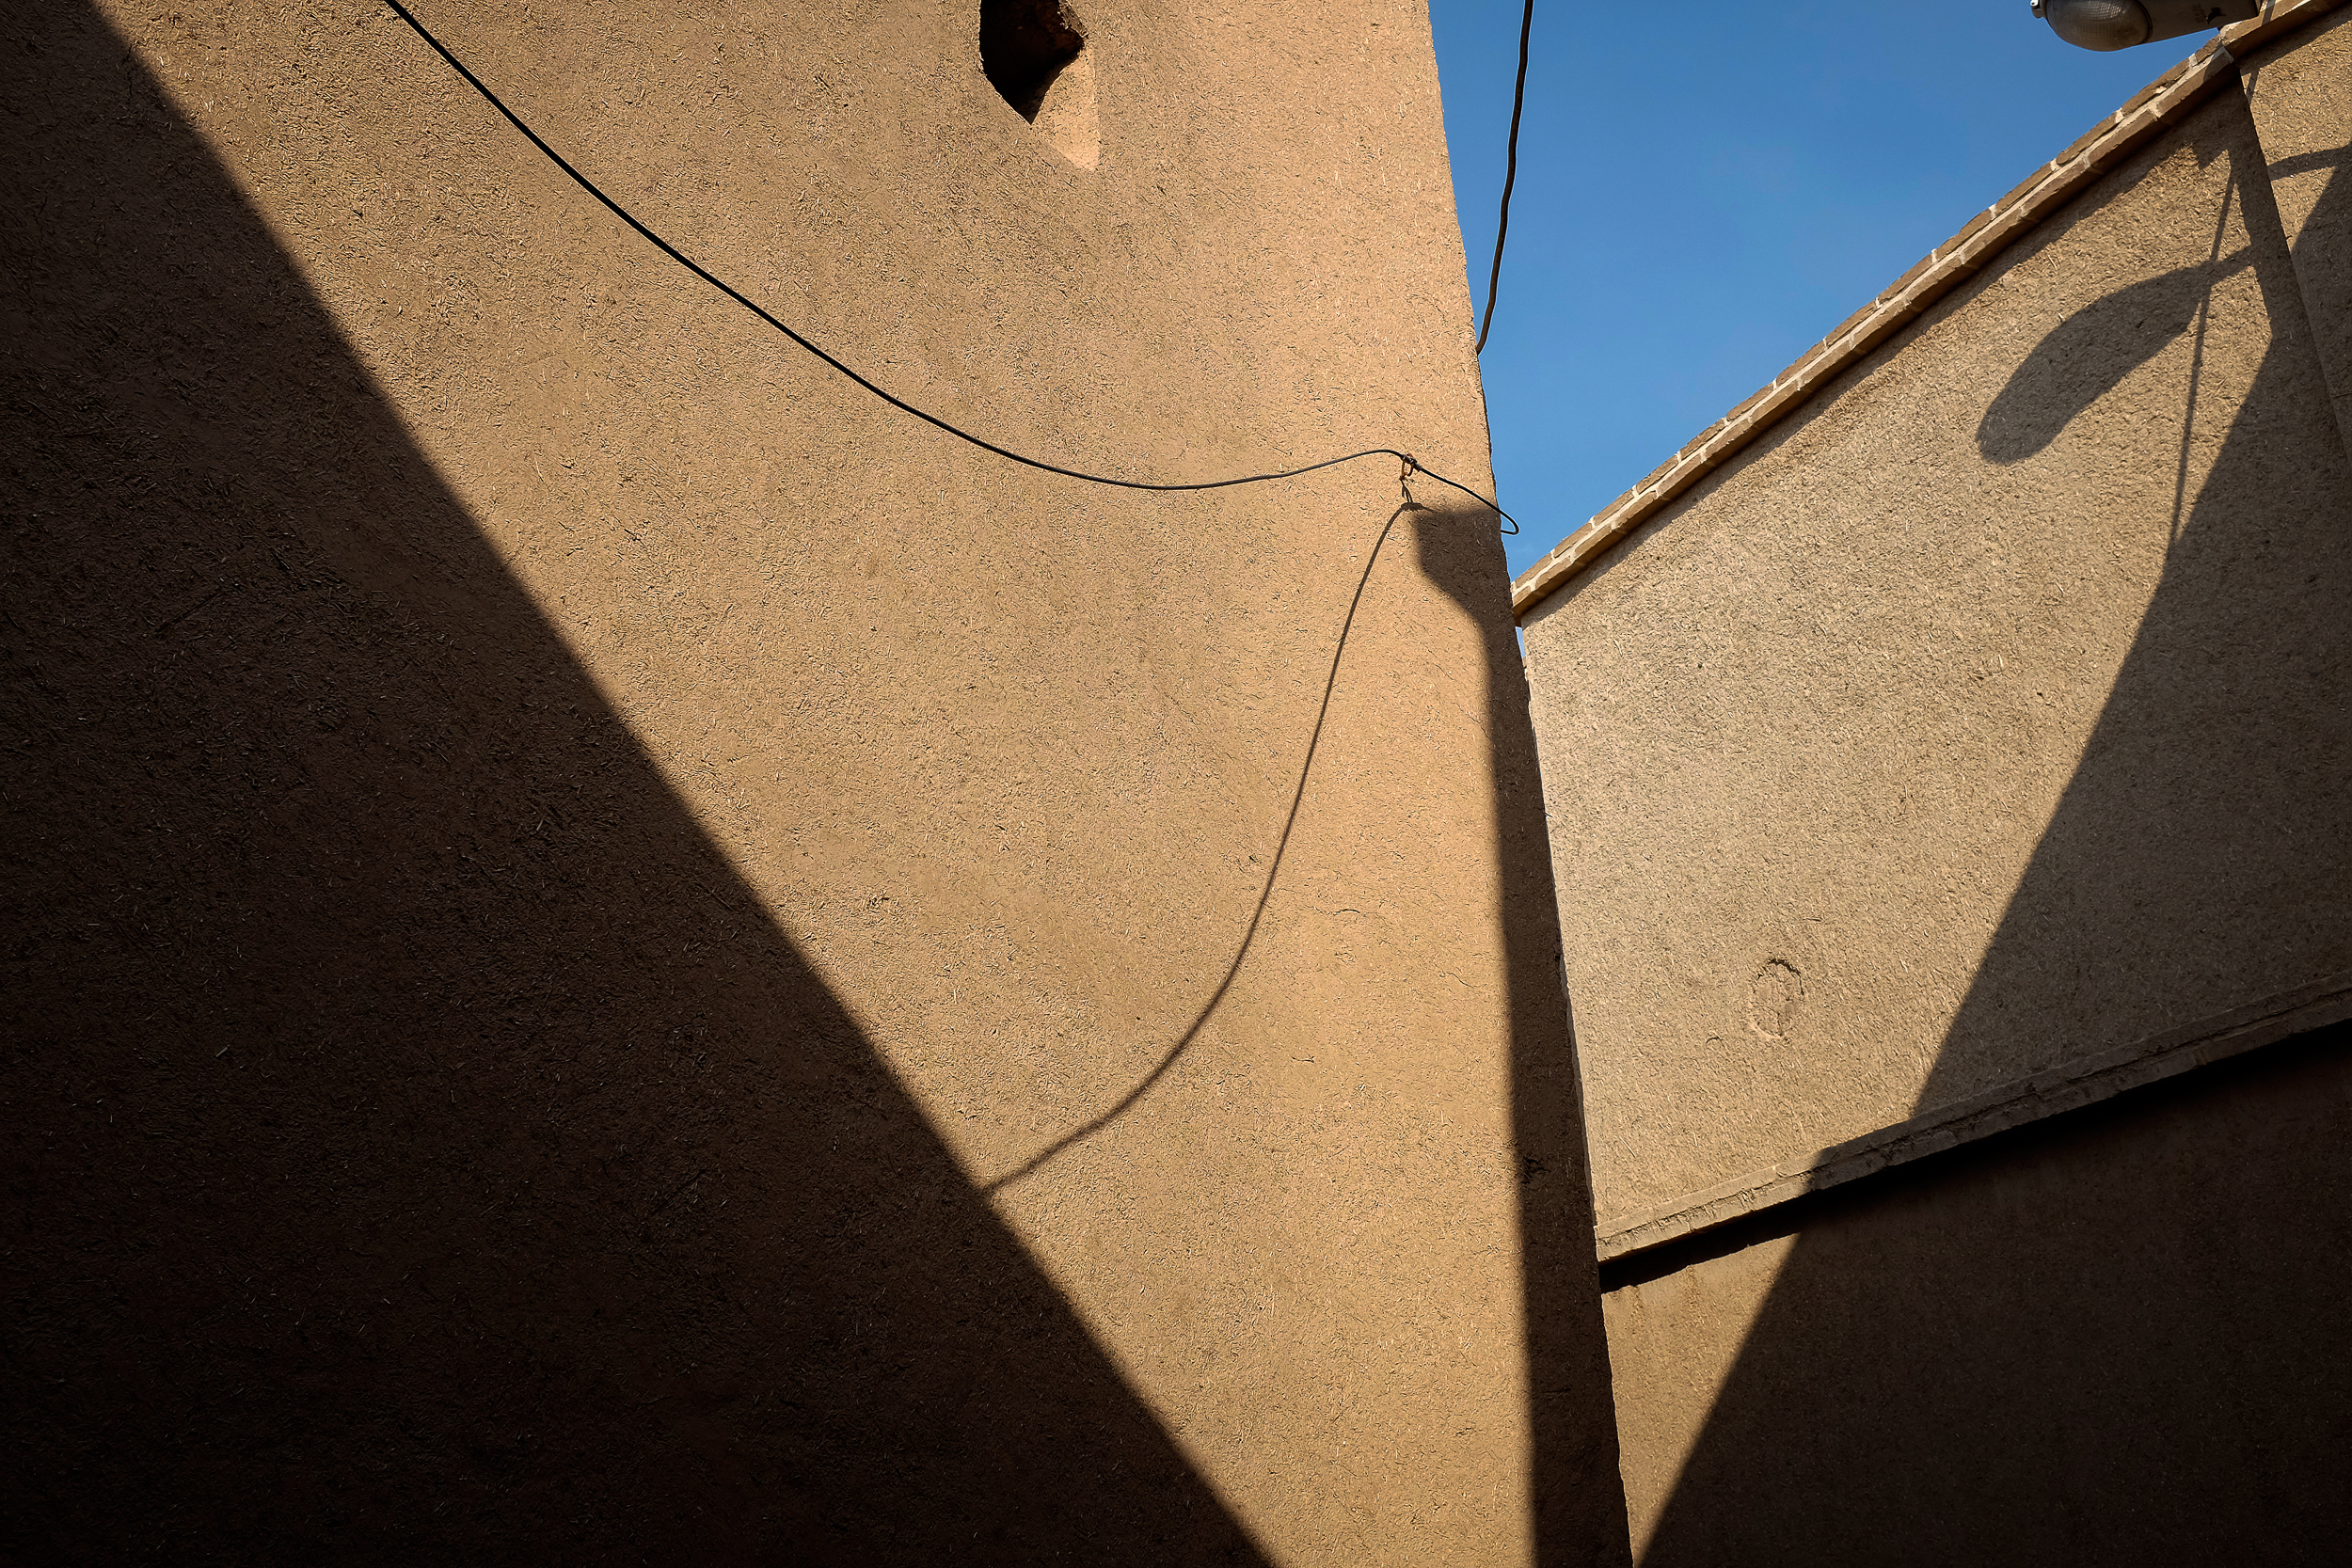 Shadows fall on the ancient dry clay walls of Kashan.